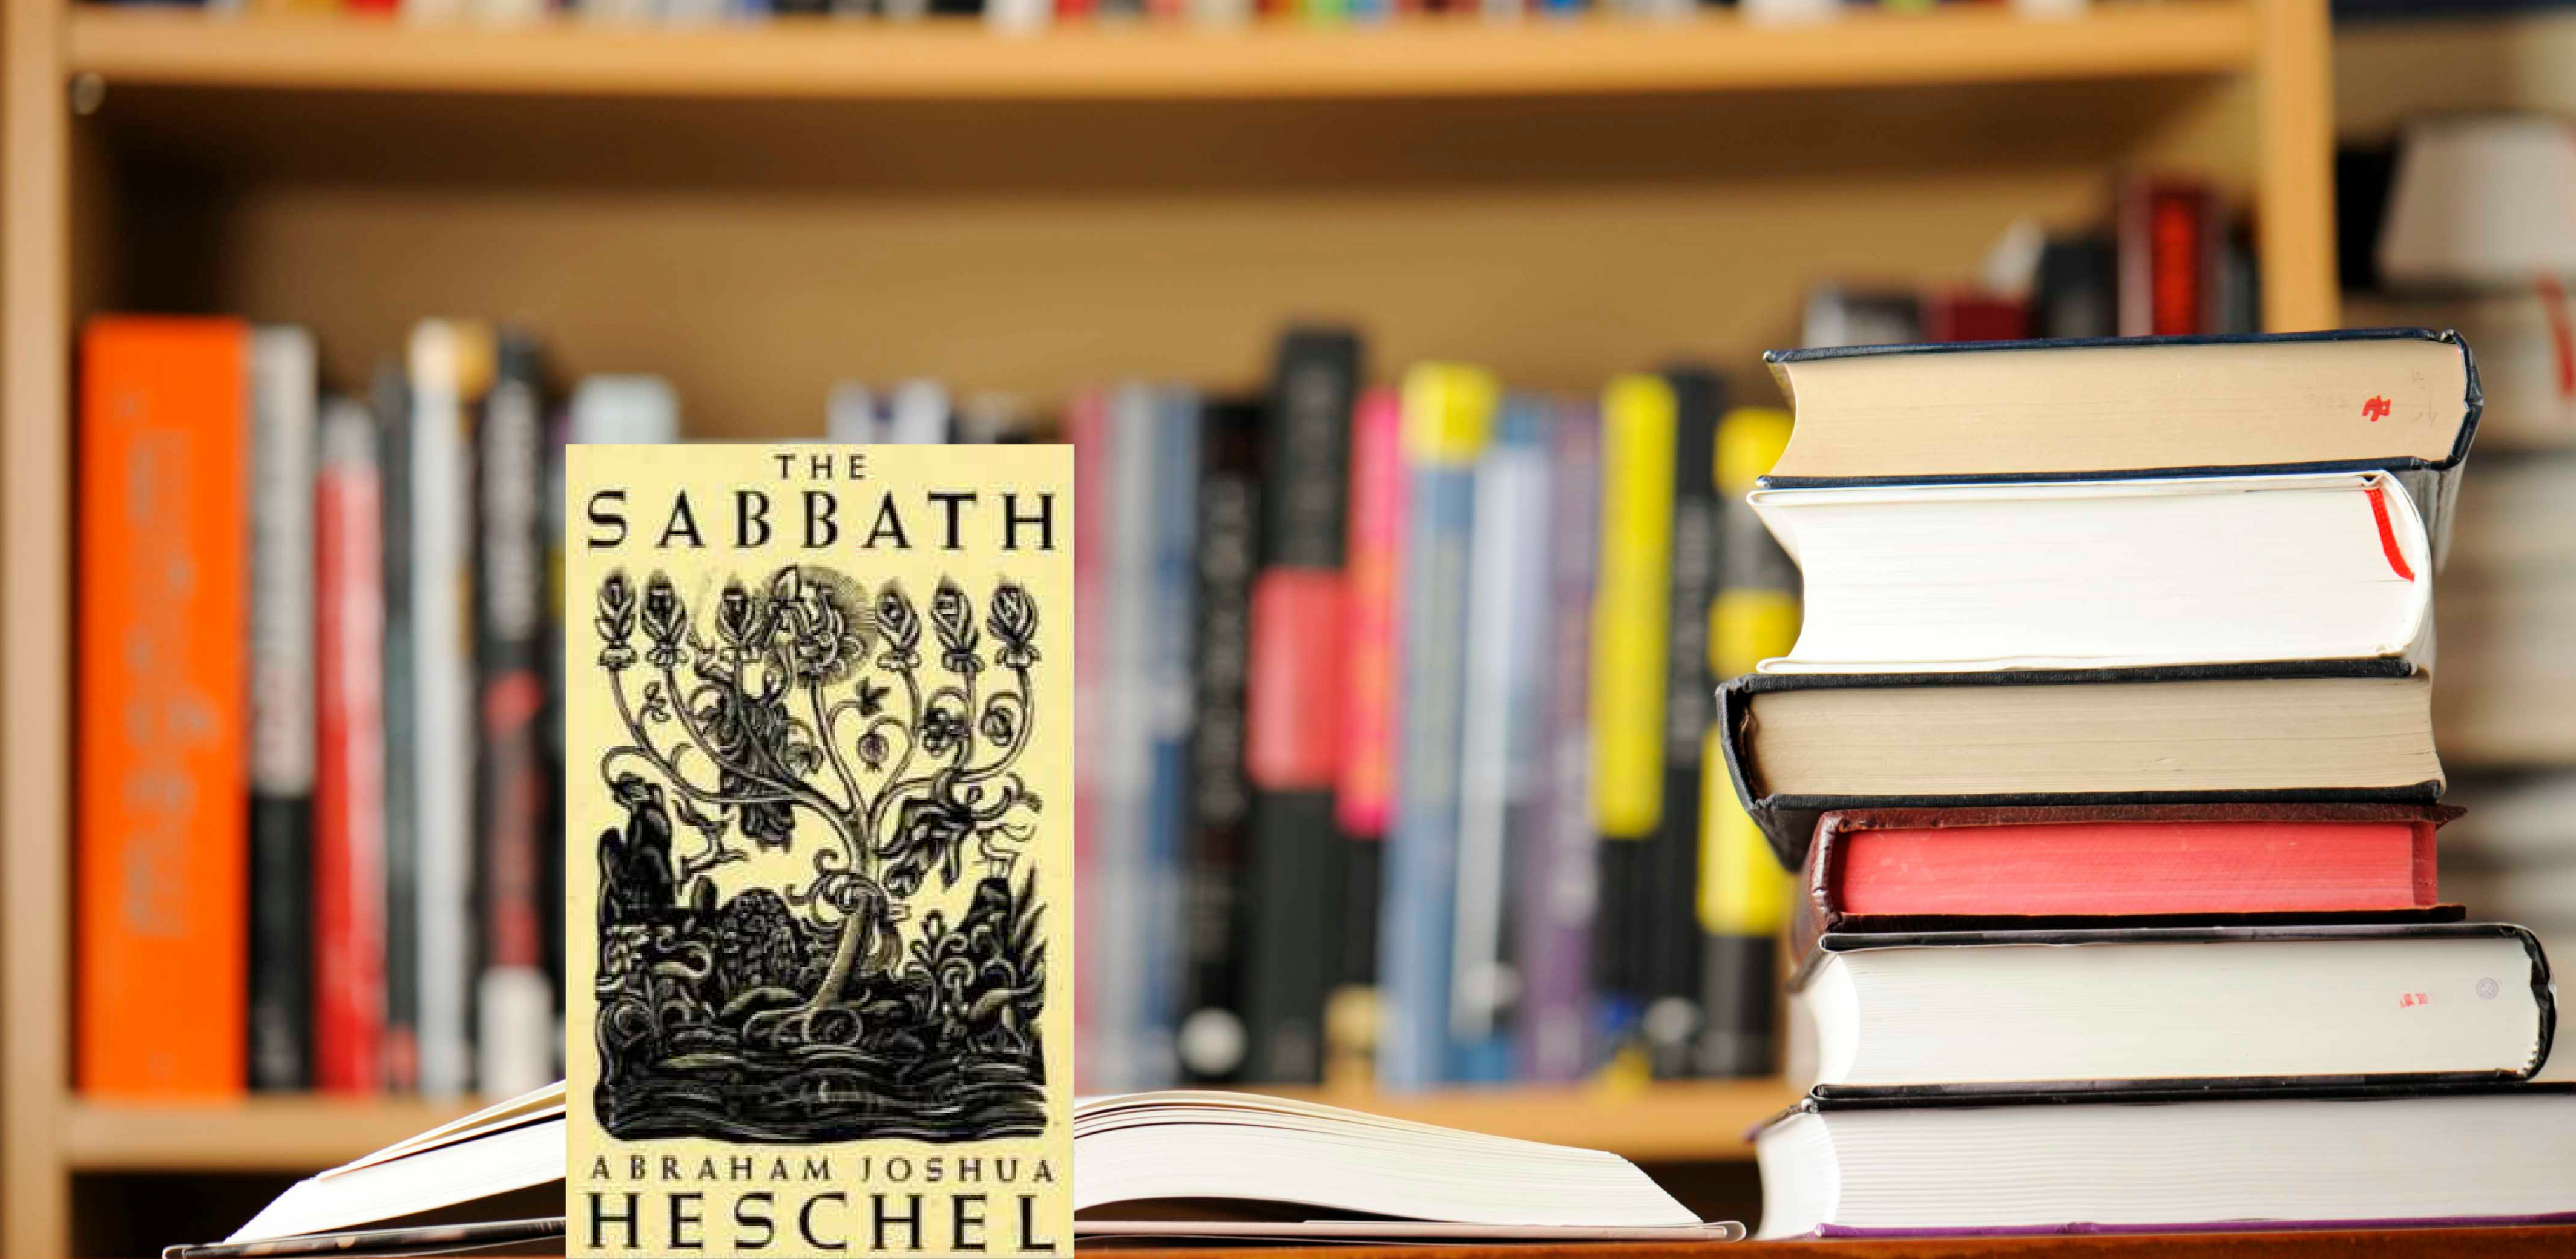 The Sabbath, by Abraham Joshua Heschel